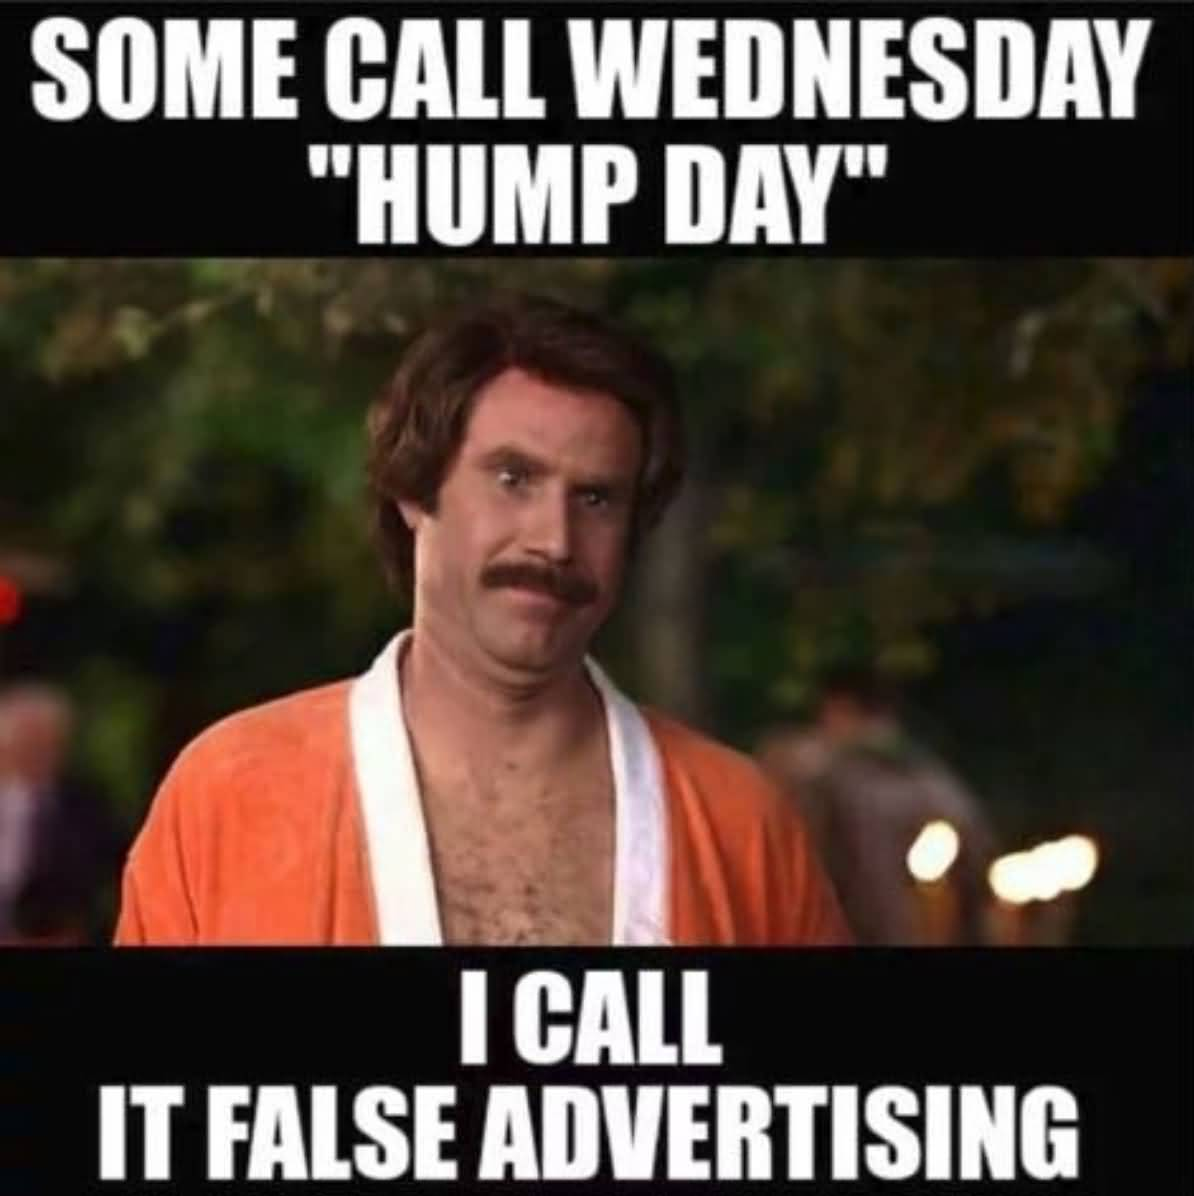 Some Call Wednesday Hump Day Hump Day Meme